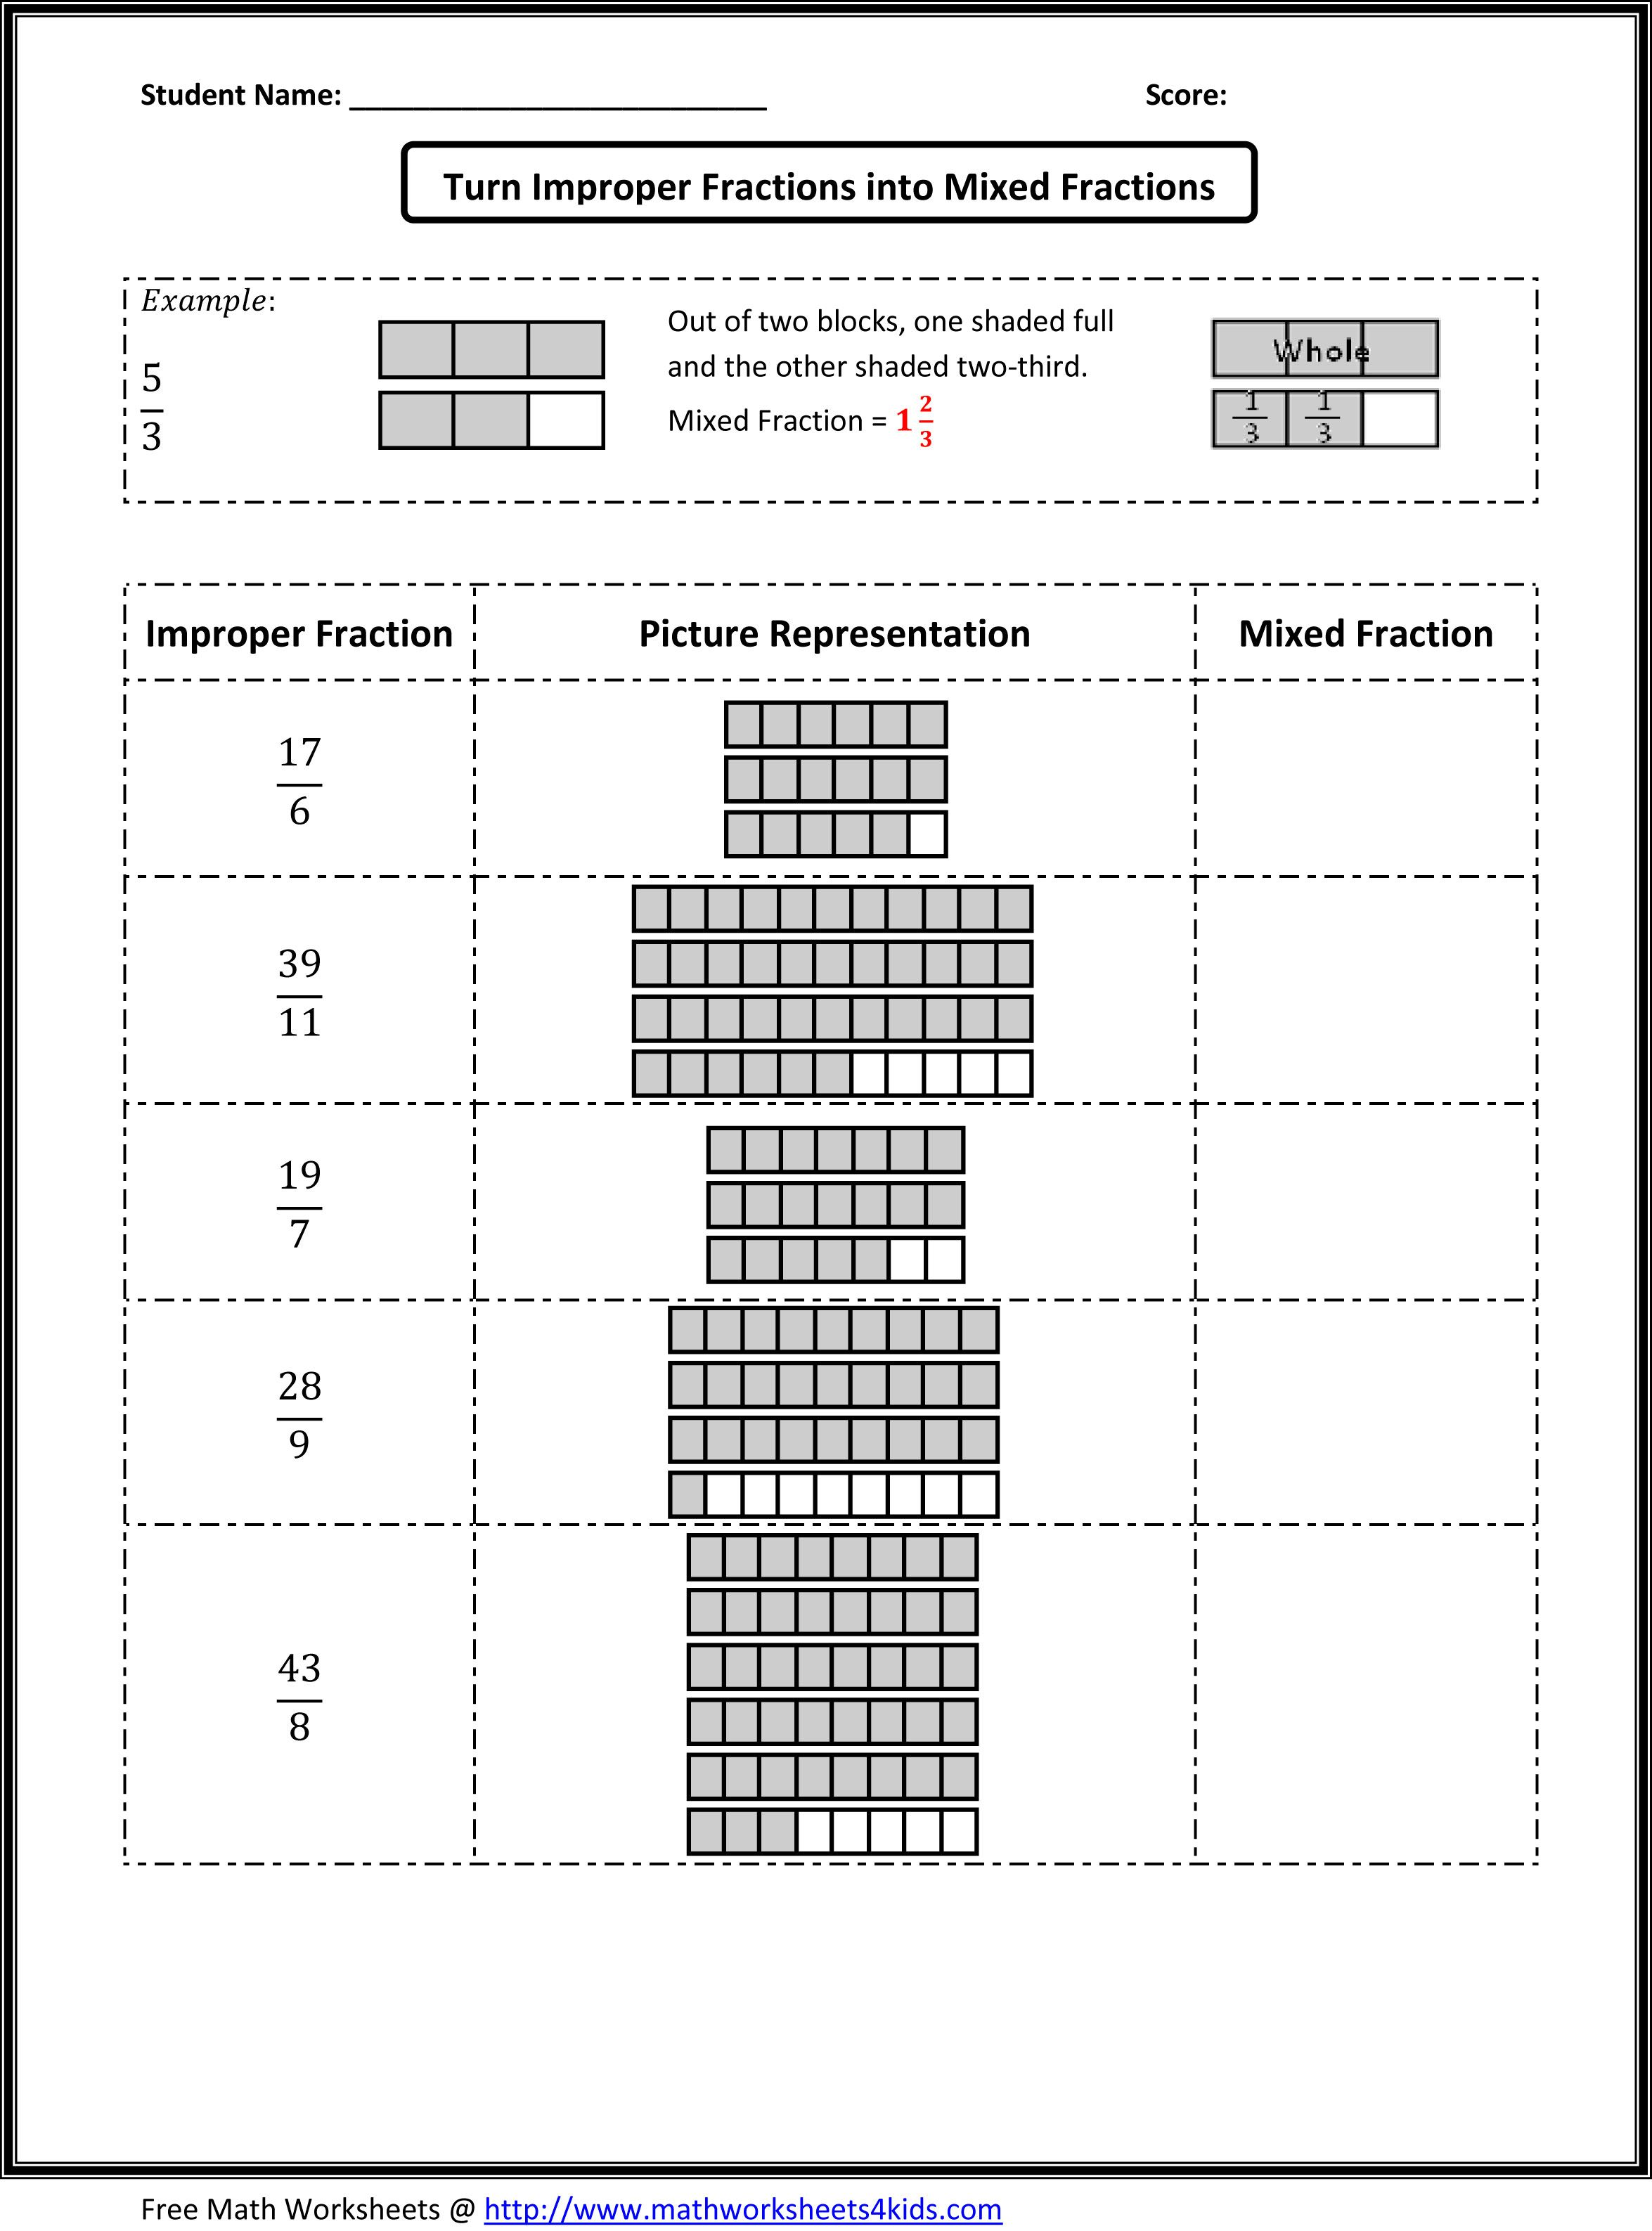 Types of fraction worksheets | What\'s New | Pinterest